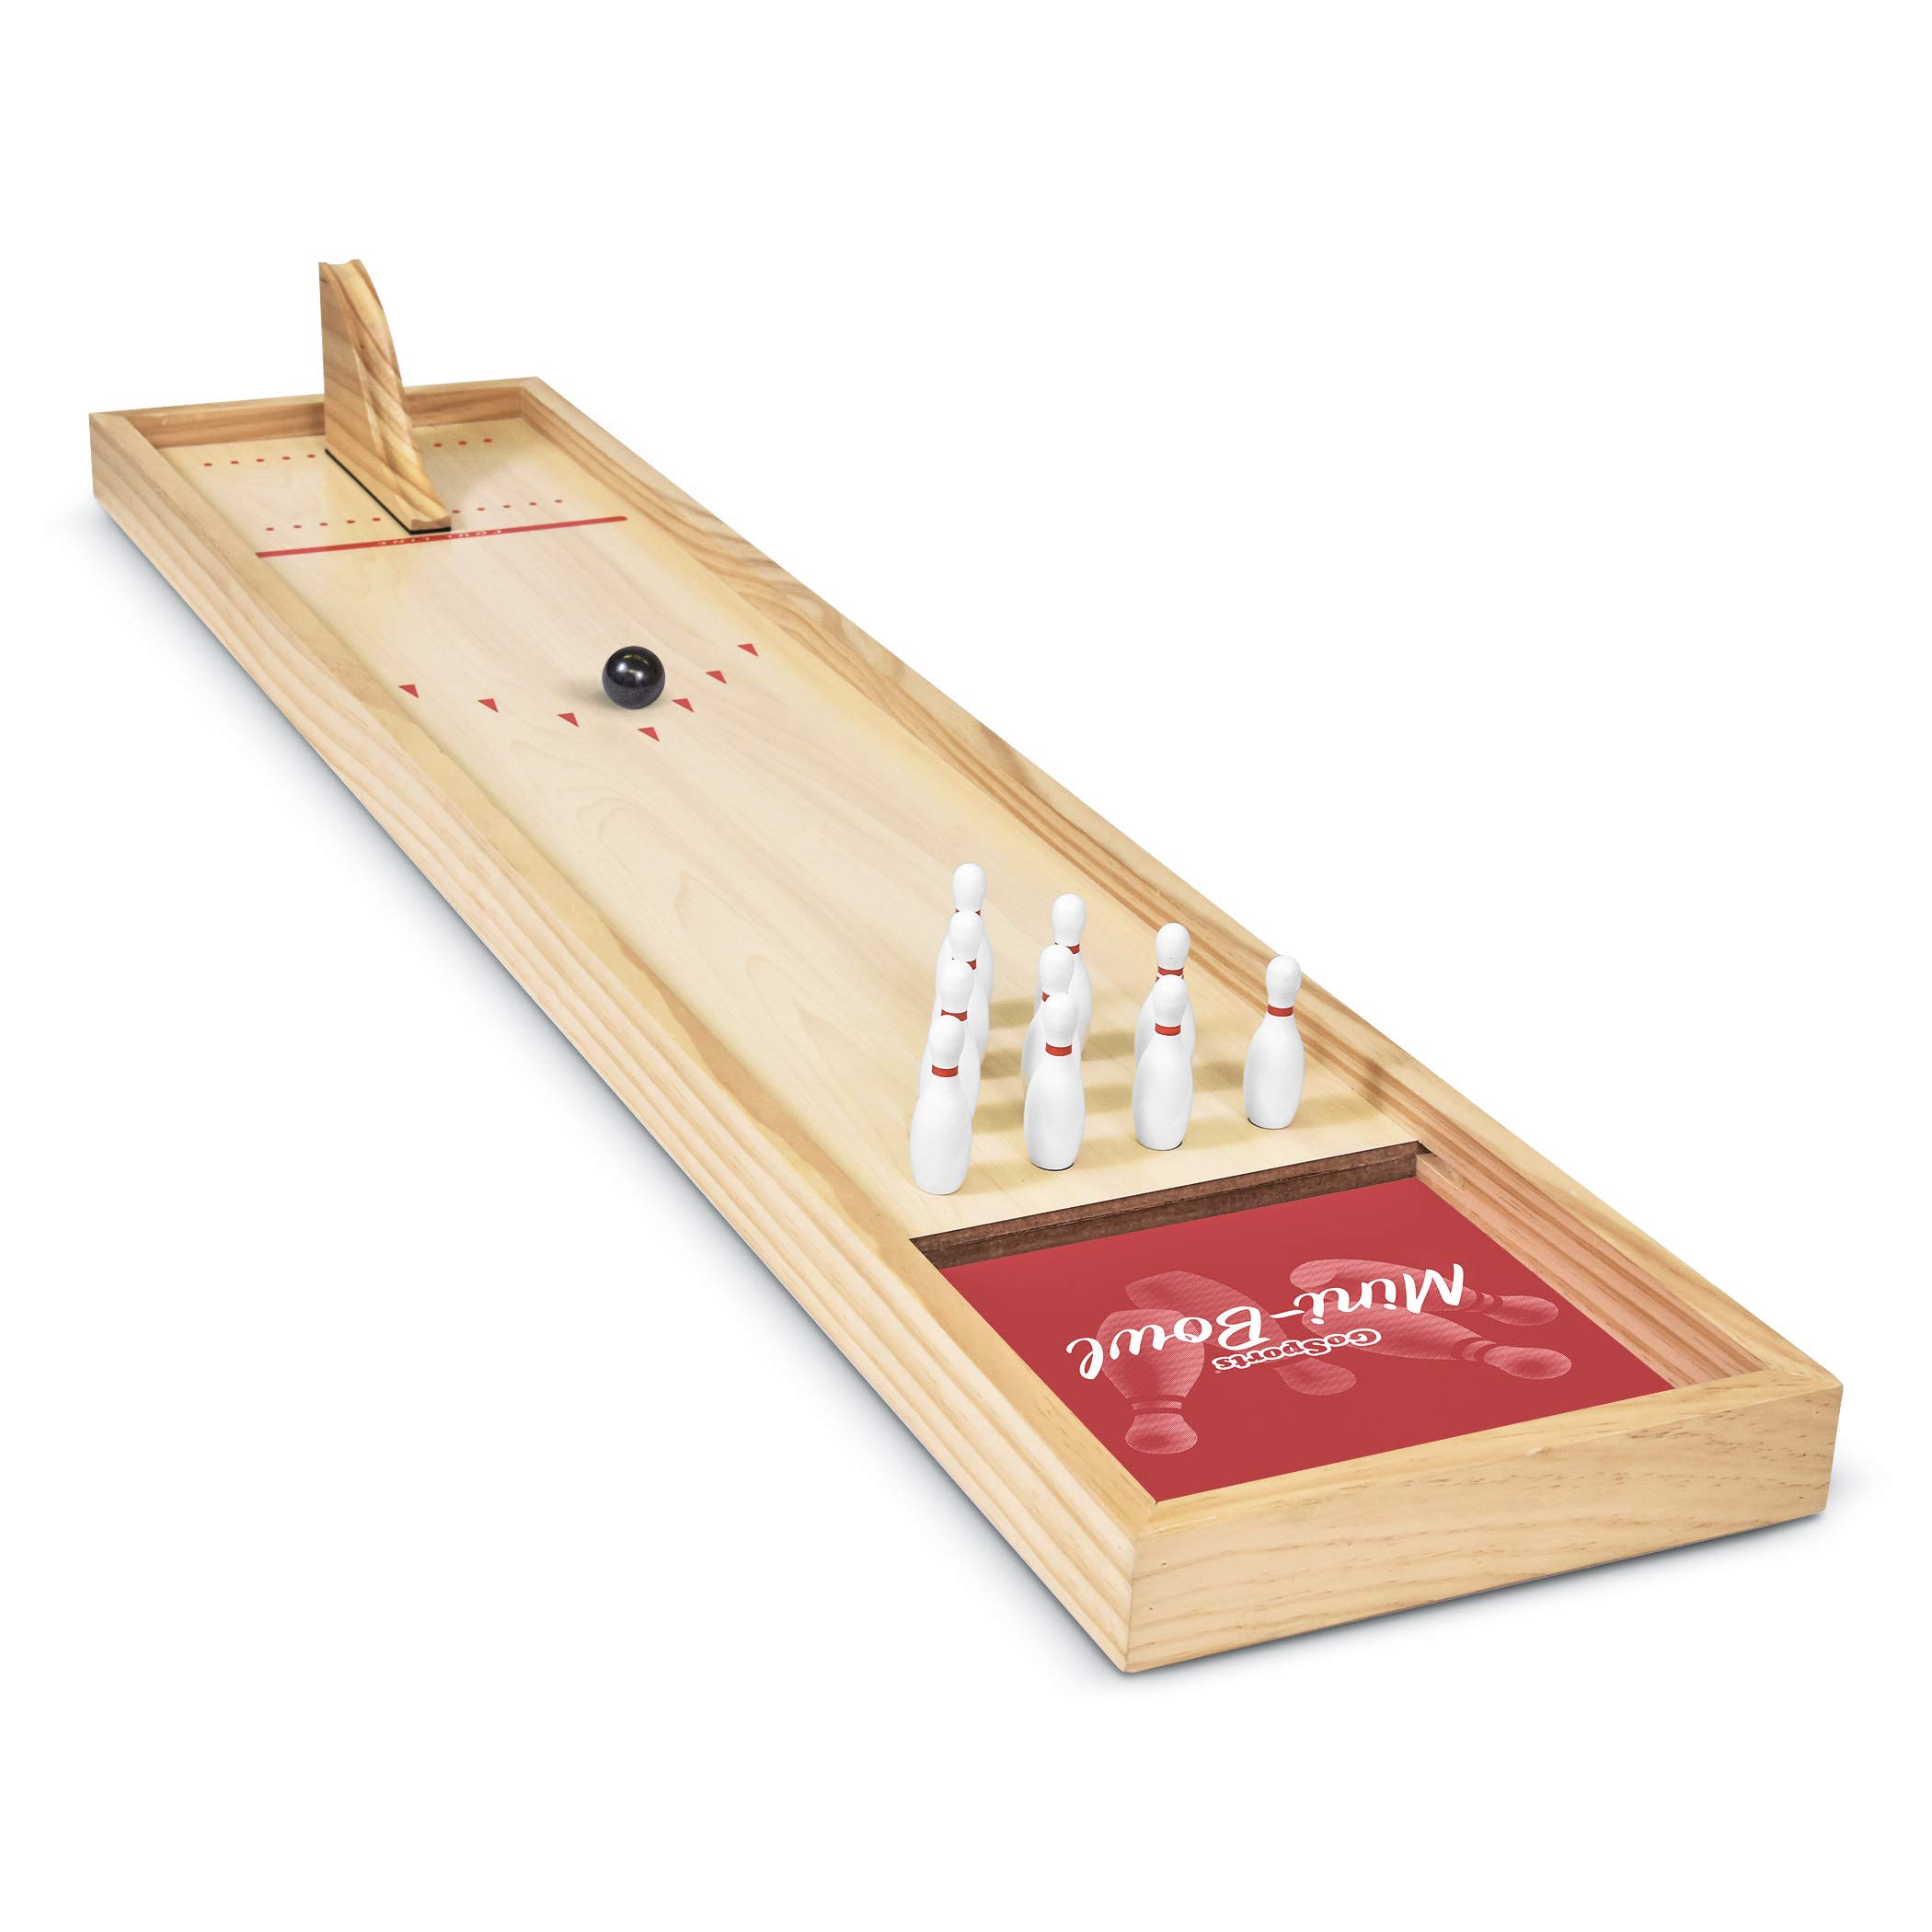 GoSports Tabletop Mini Bowling Game Set | Premium Wooden Construction with Dry Erase Scorecard | Perfect for Kids & Adults by GoSports (Image #1)